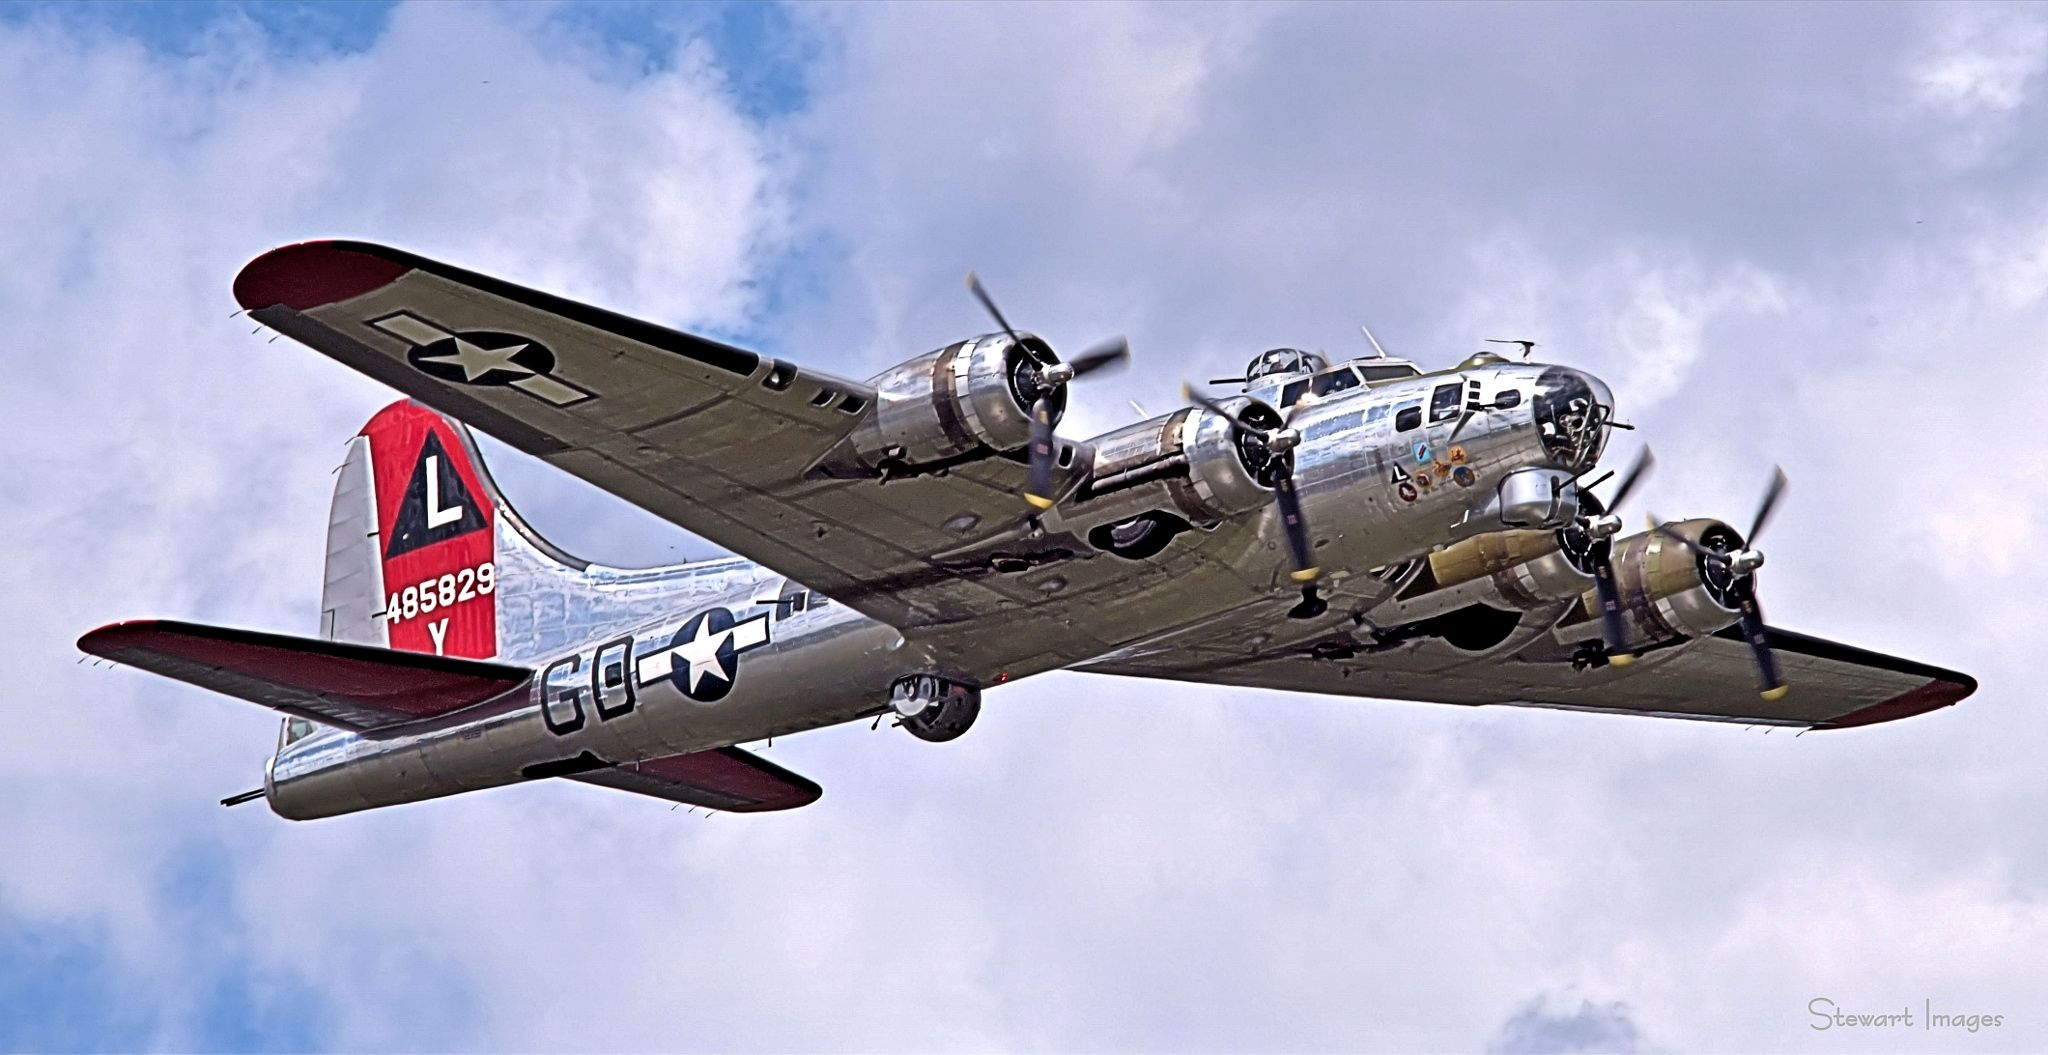 The B17 Yankee Lady is owned by the Yankee Air Force